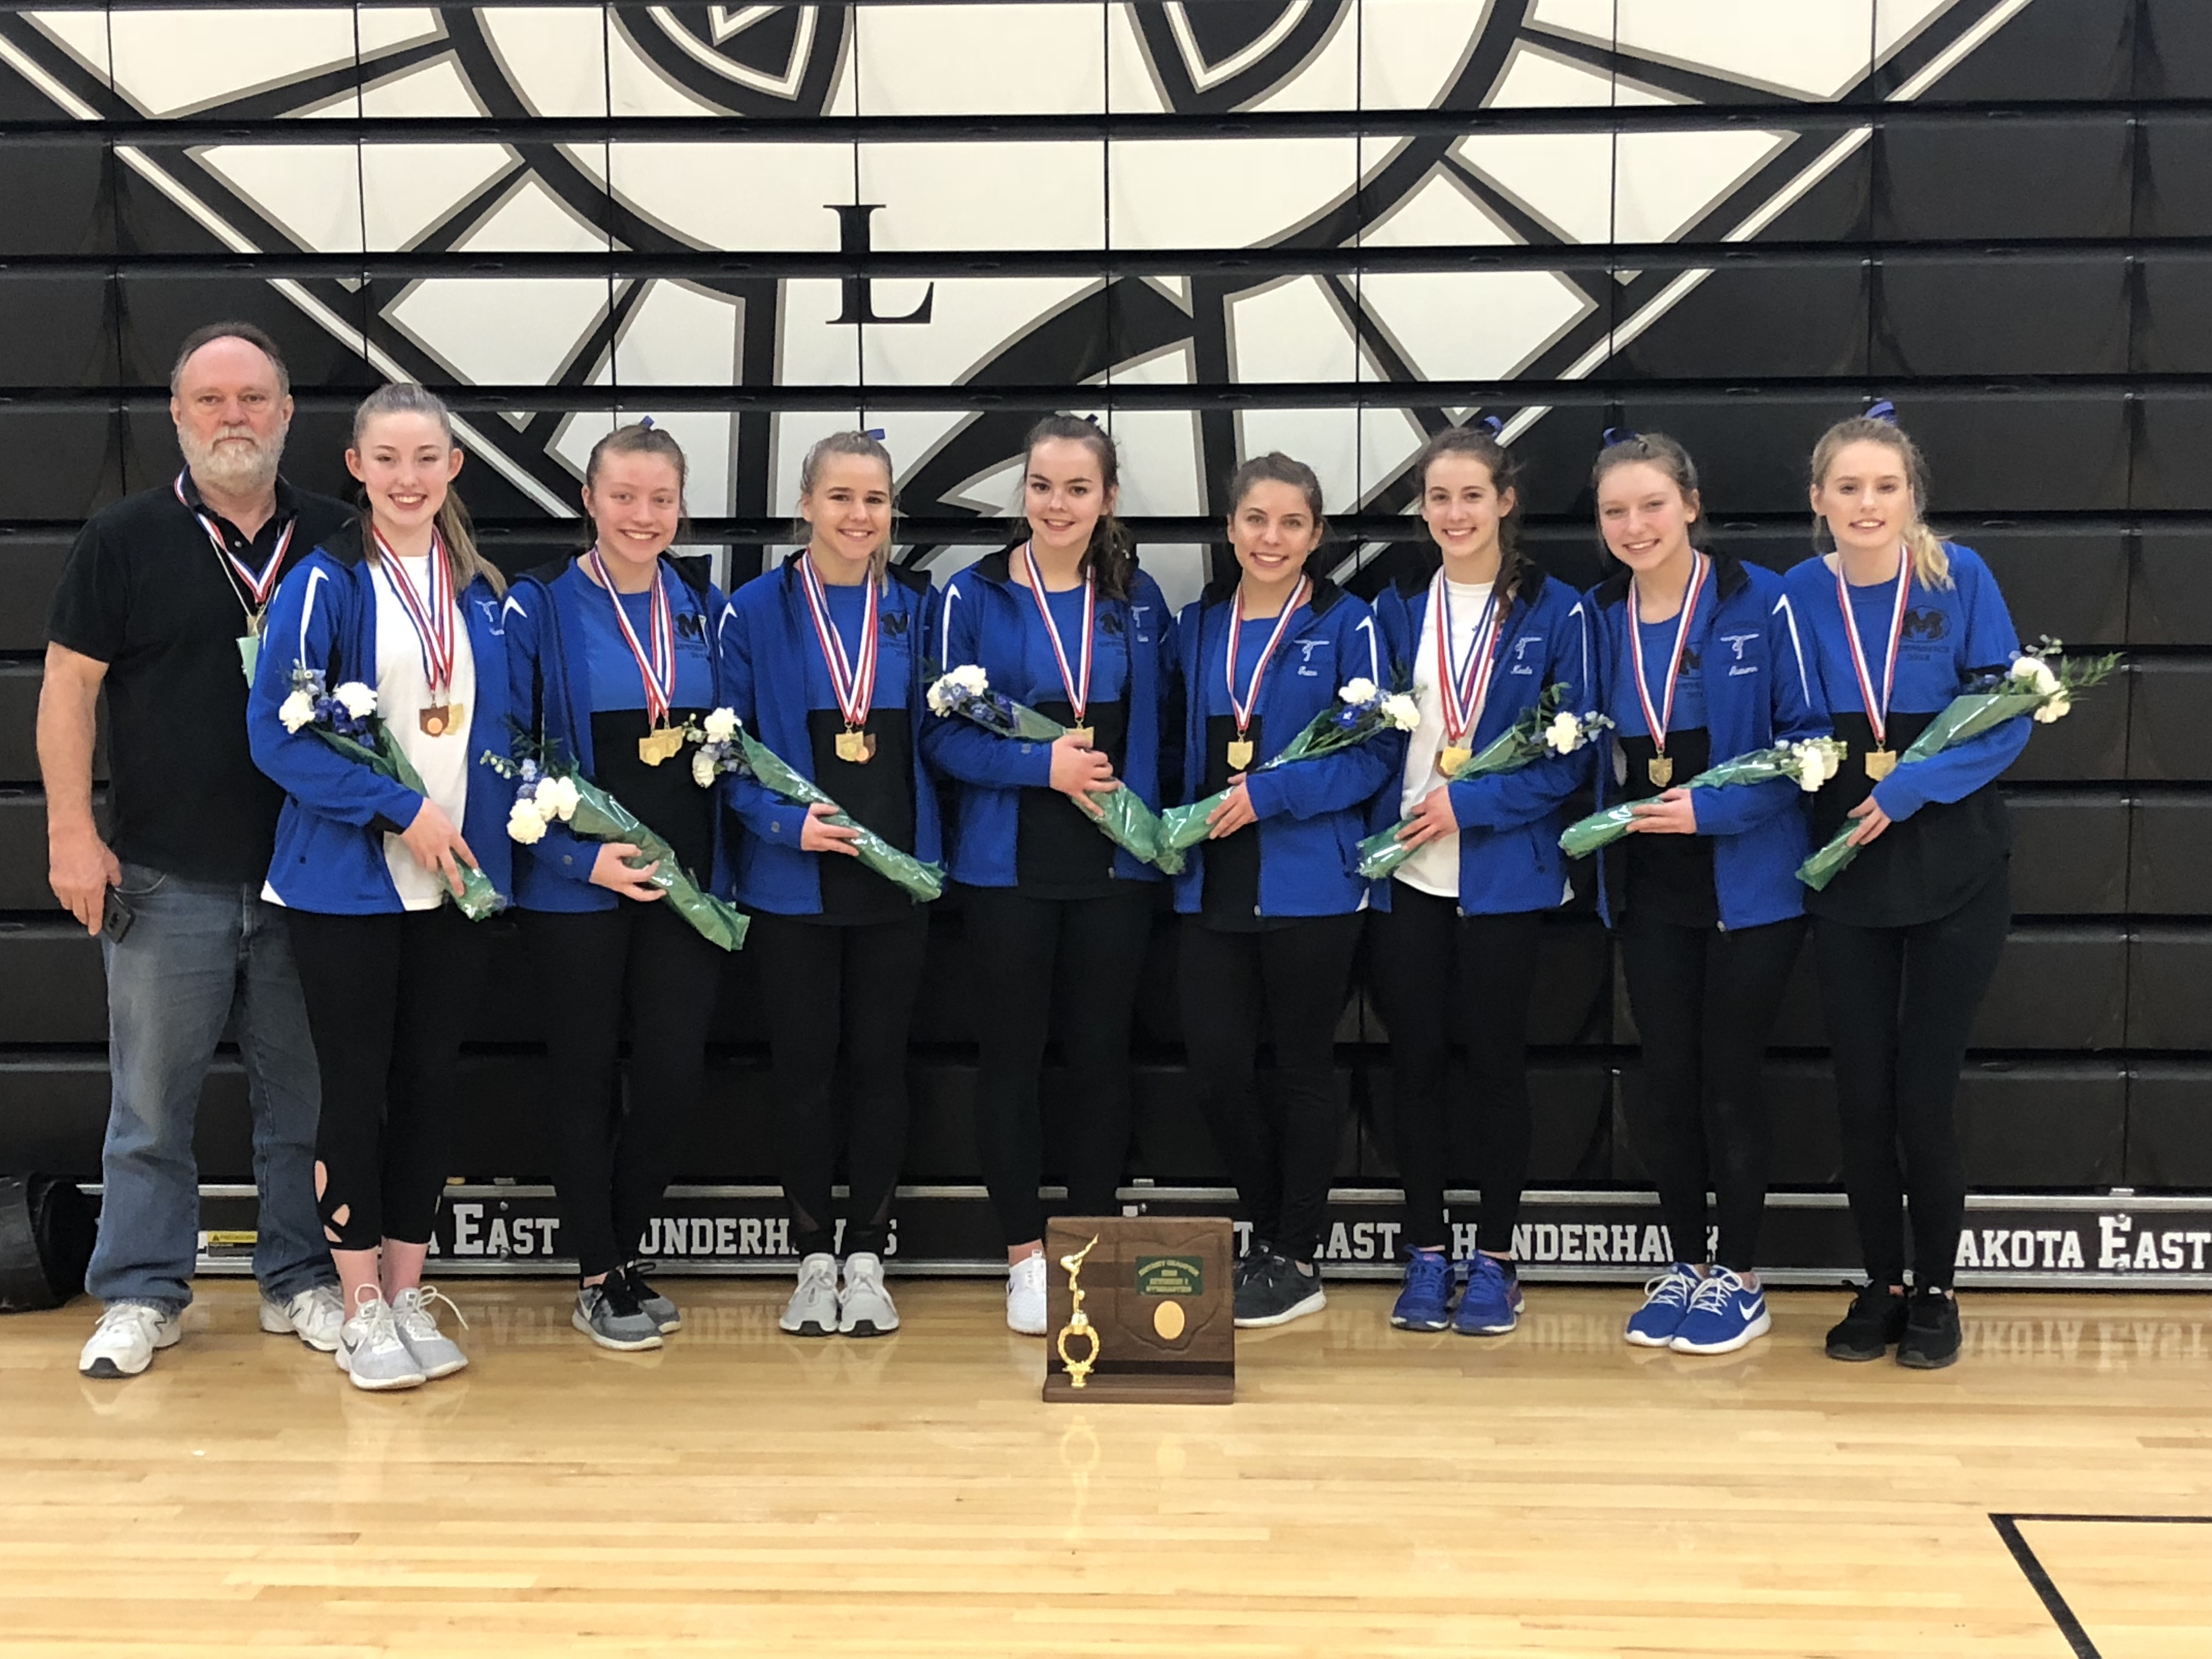 Gymnastics Finishes 10th at State Meet